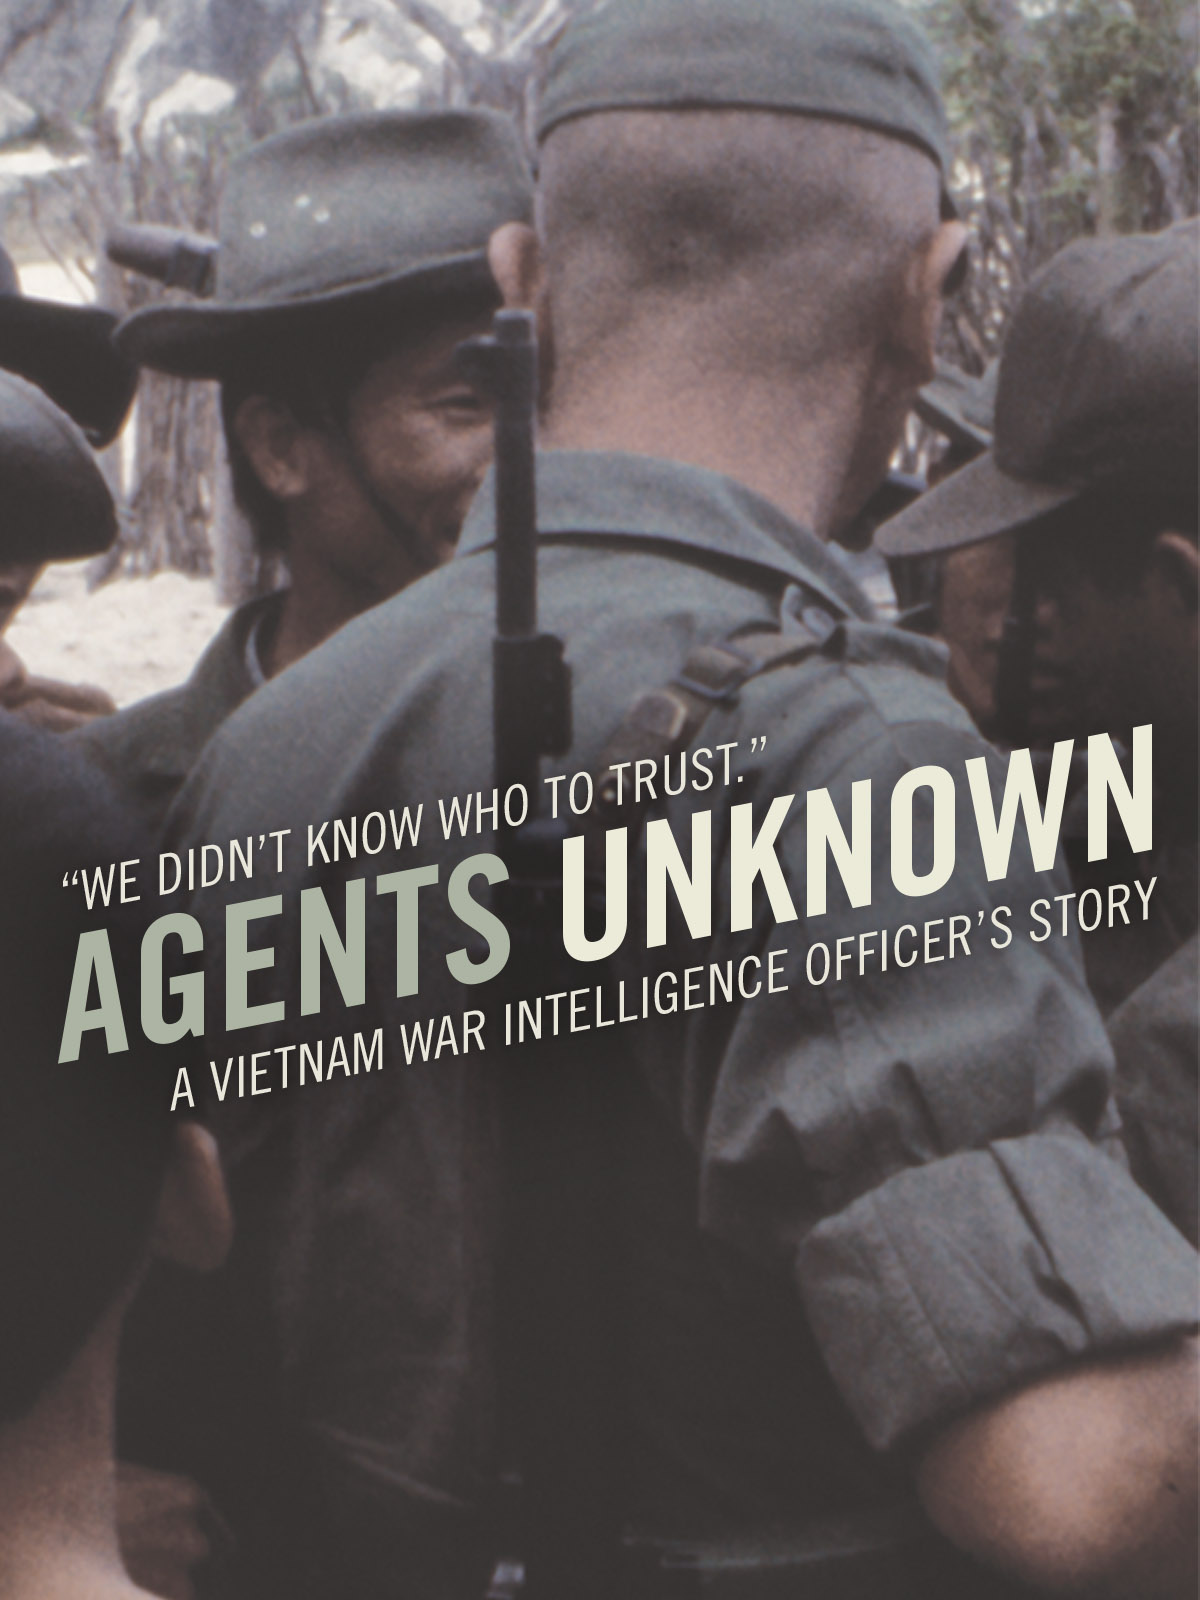 Agents Unknown (2019)